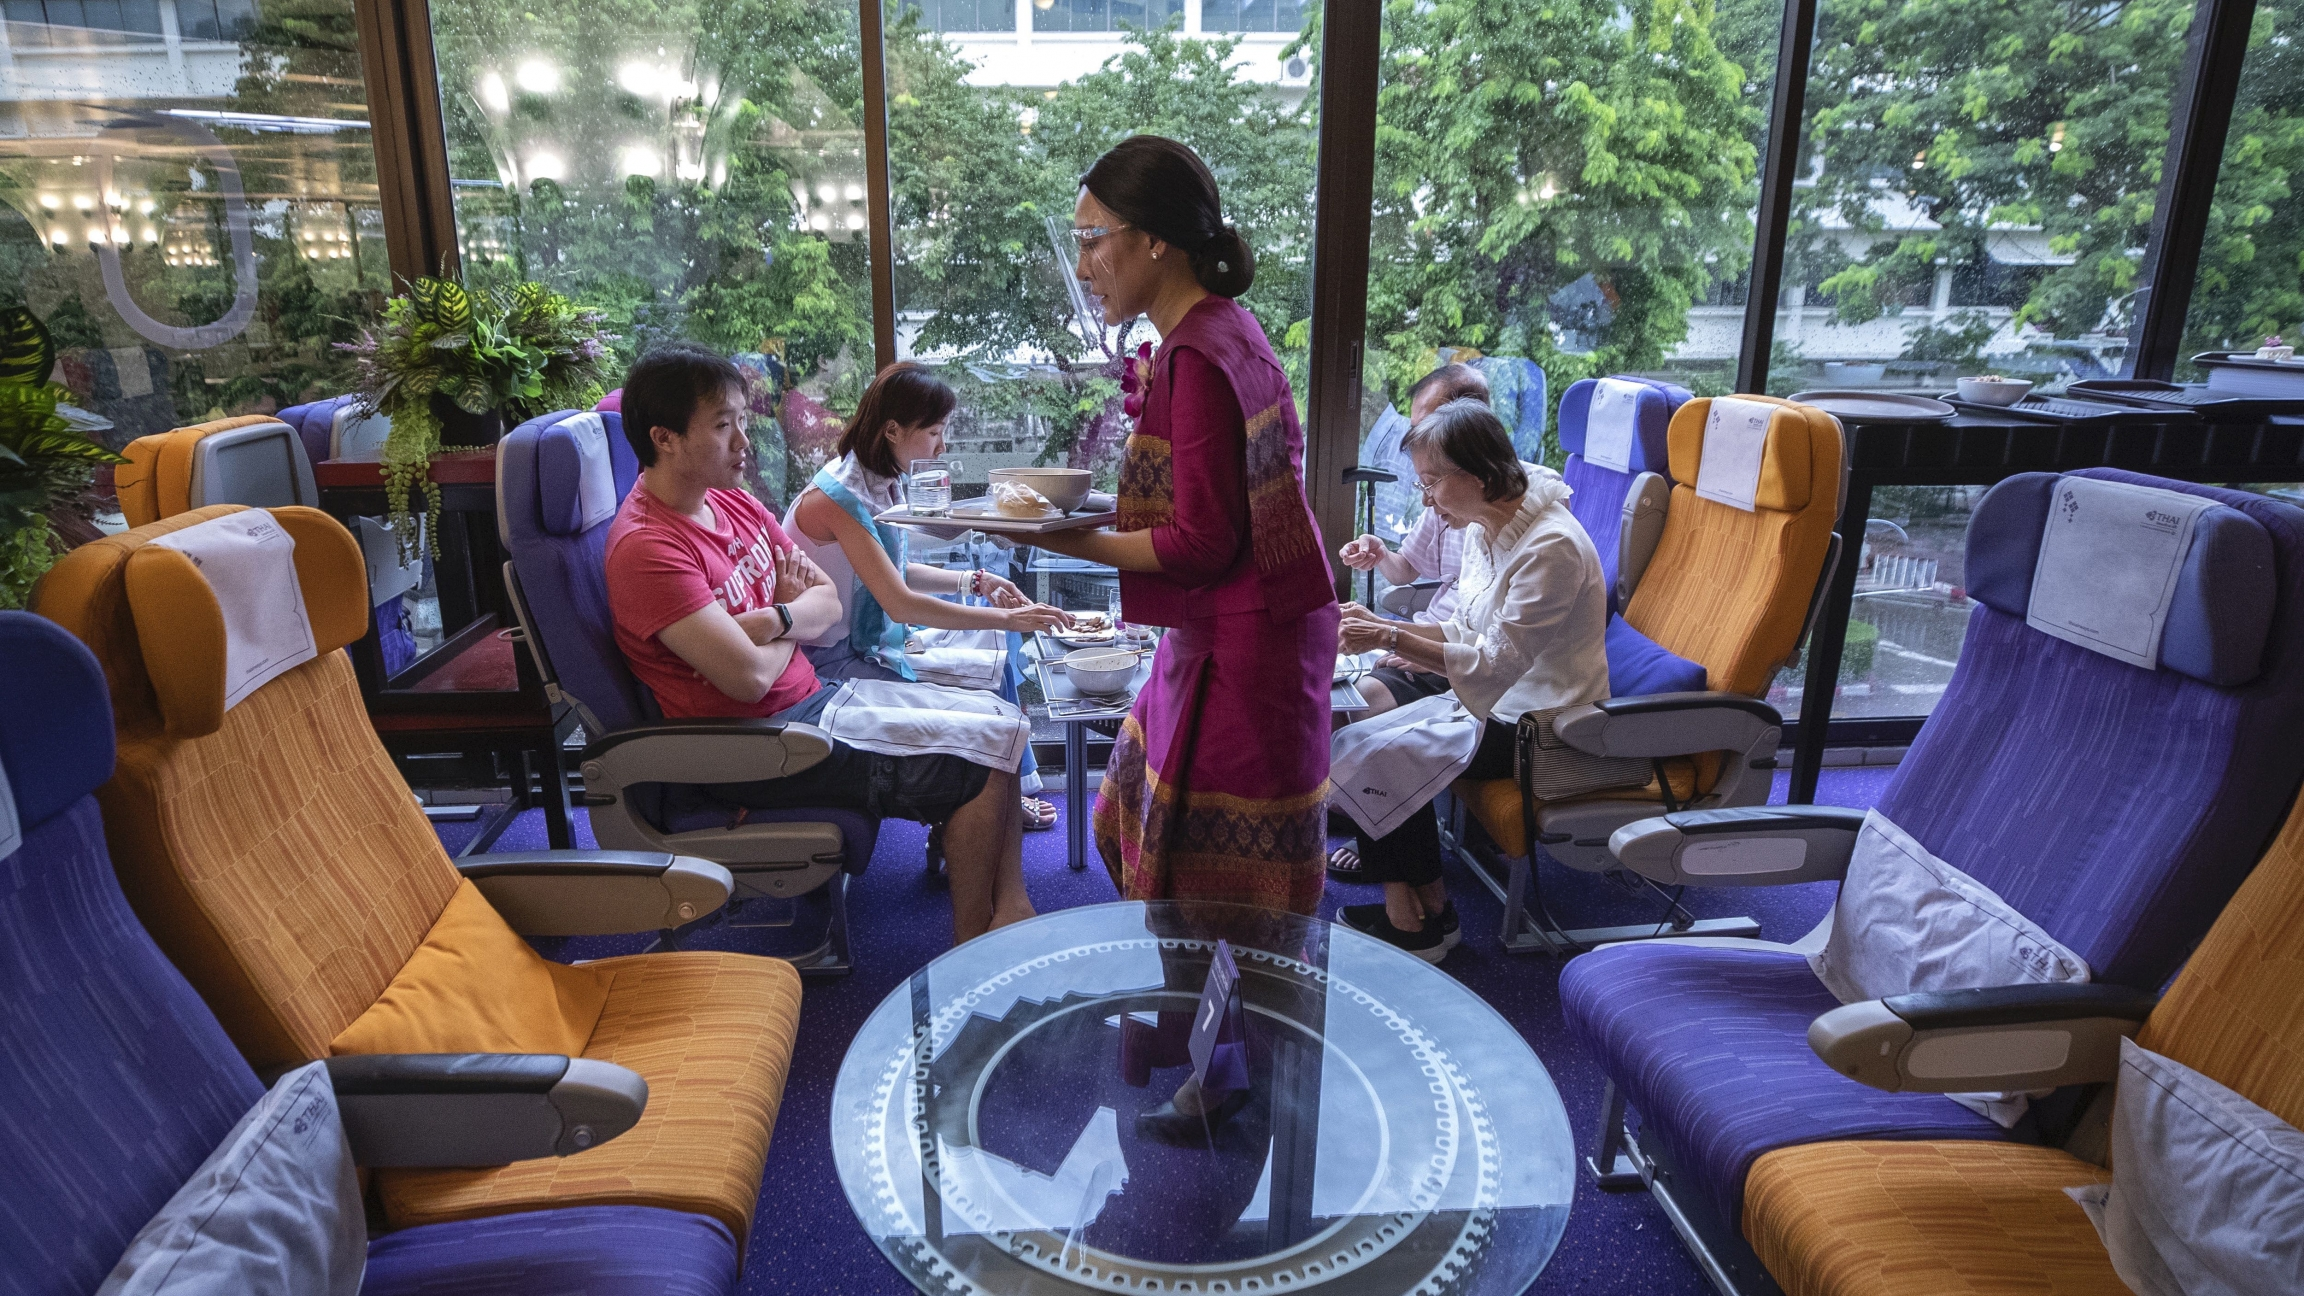 A flight attendant is serving meals in a flight-themed restaurant complete with airline seats and cabin crew to customers at Thai airways head office in Bangkok, Oct. 3, 2020.